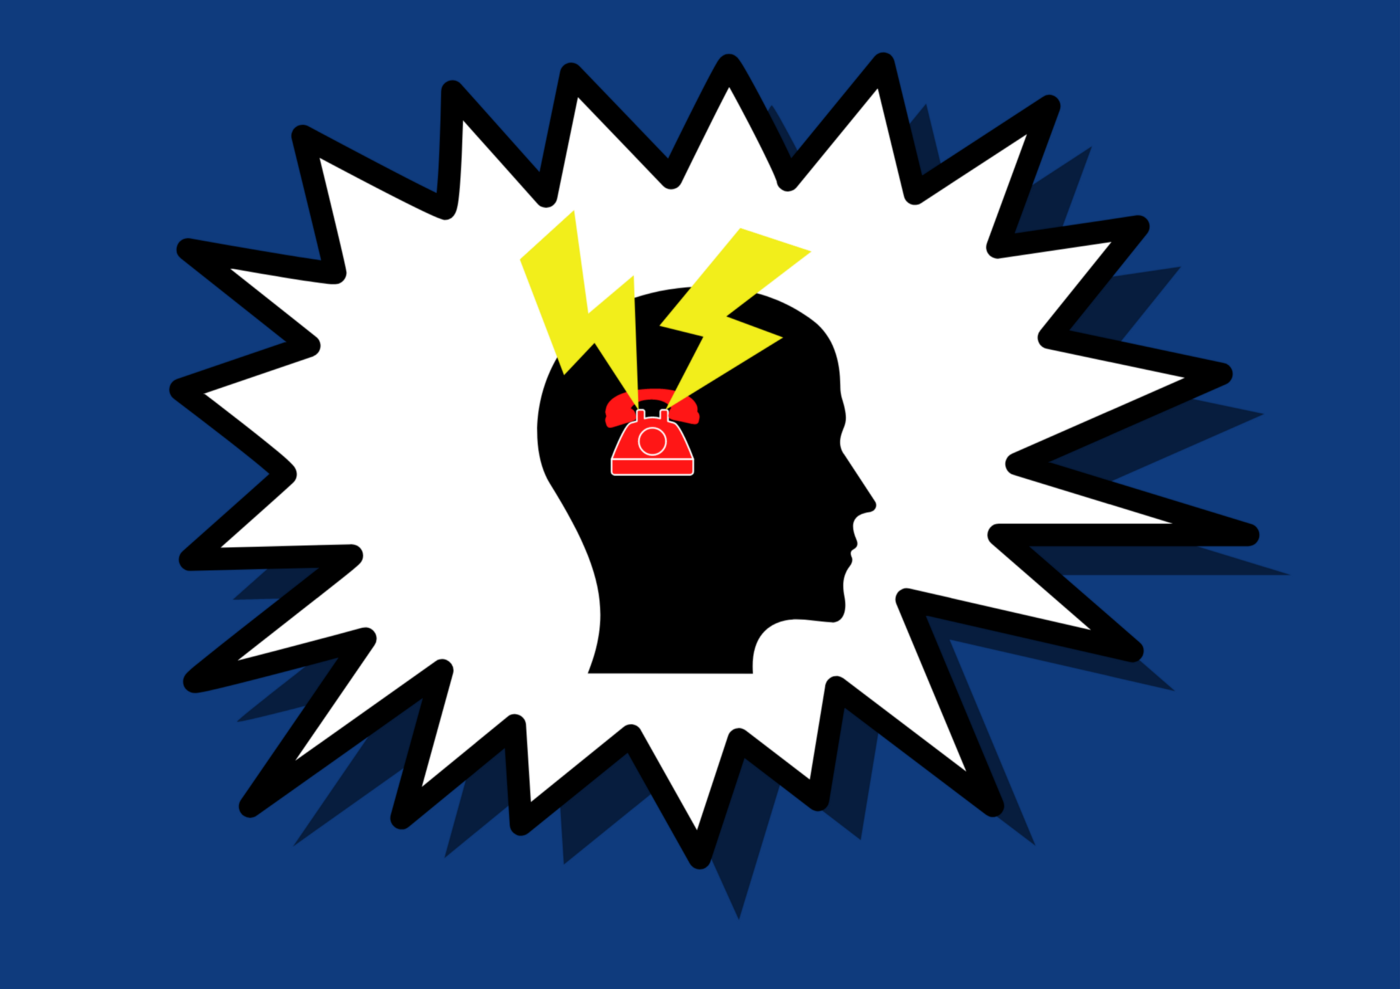 A illustration of a human head with a red telephone positioned at the ear and thunderbolts directed inwards.